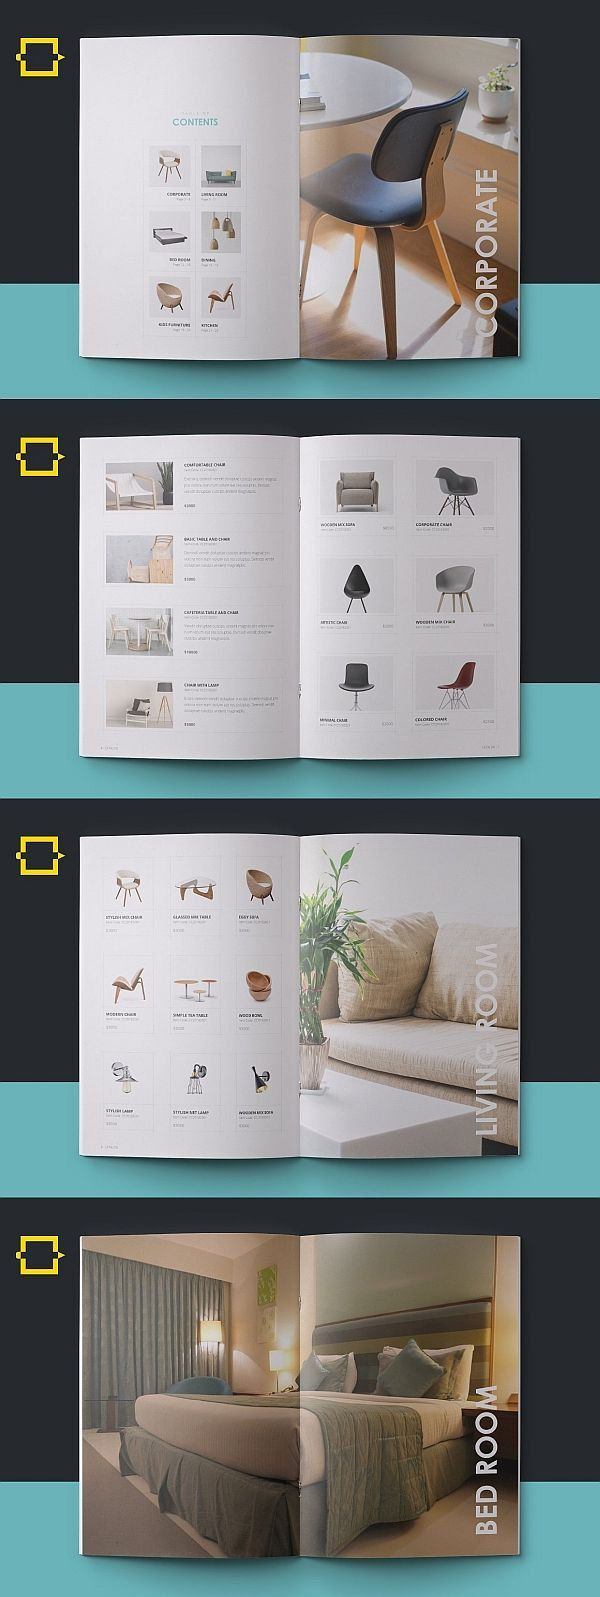 produktkatalog in 2020 (with images) | catalog design layout